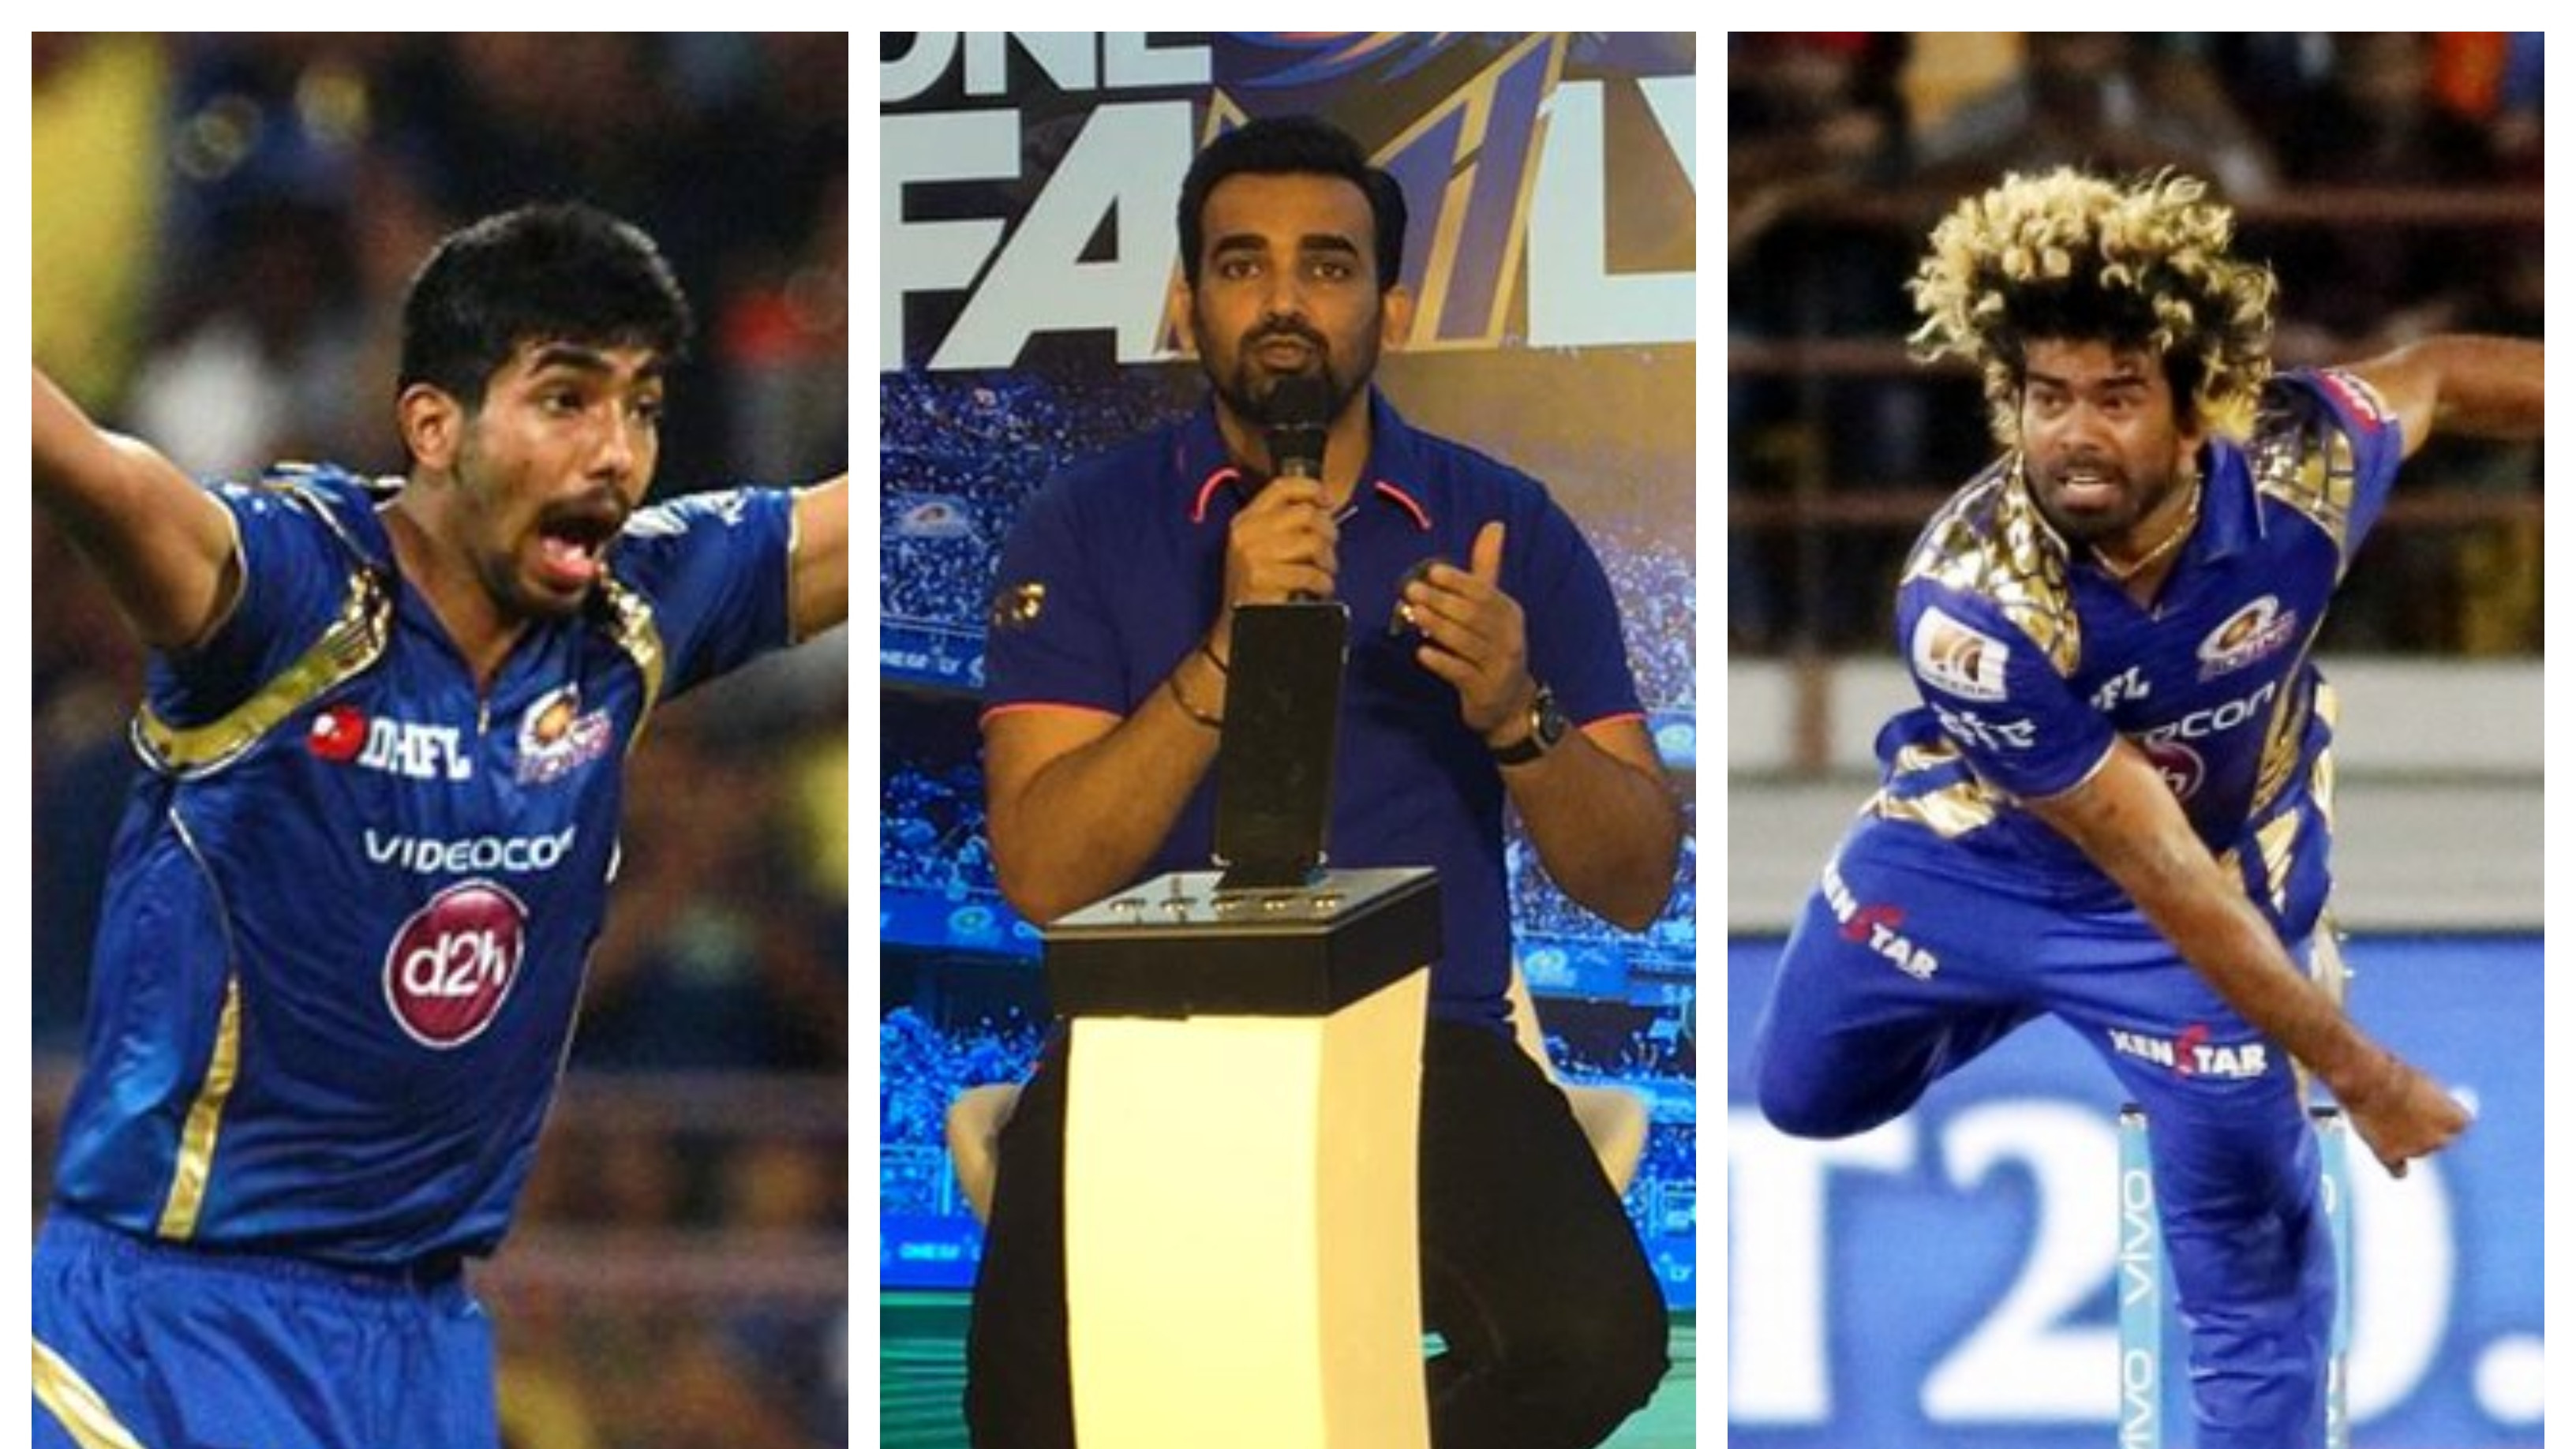 IPL 2019: Jasprit Bumrah has benefited a lot from Lasith Malinga , says Zaheer Khan